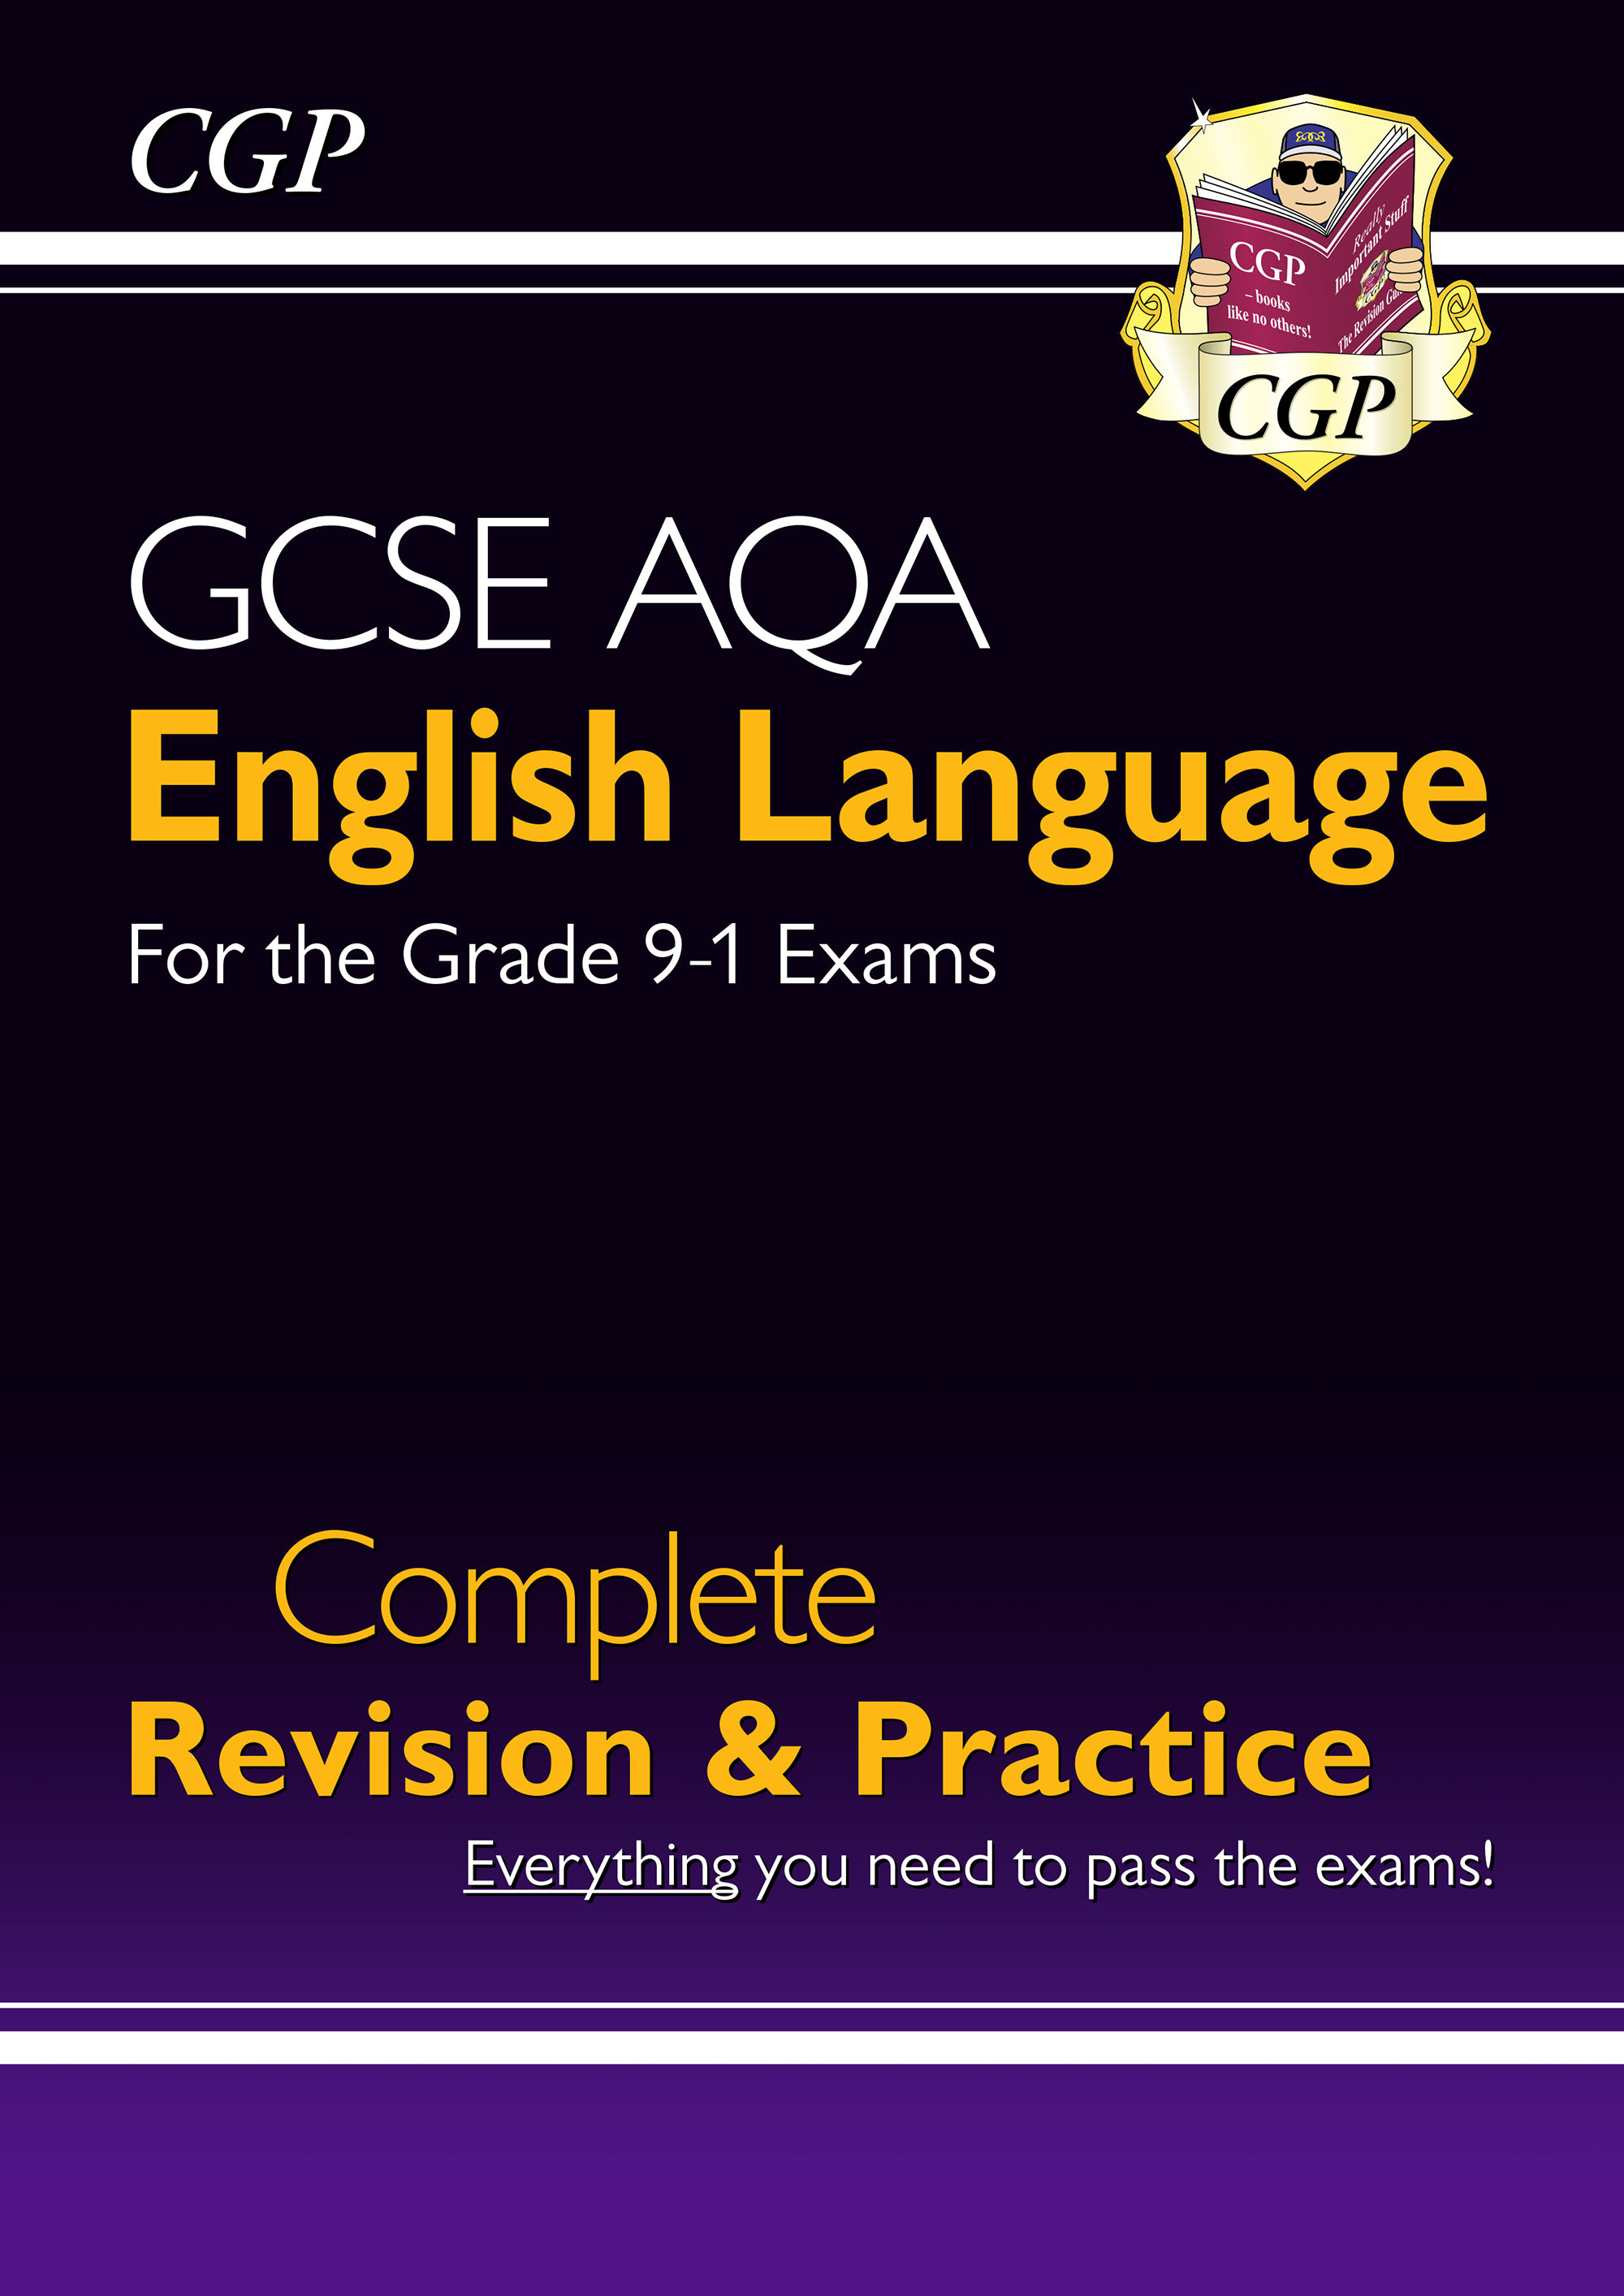 ENAS42D - GCSE English Language AQA Complete Revision & Practice - Grade 9-1 Course Online Edition